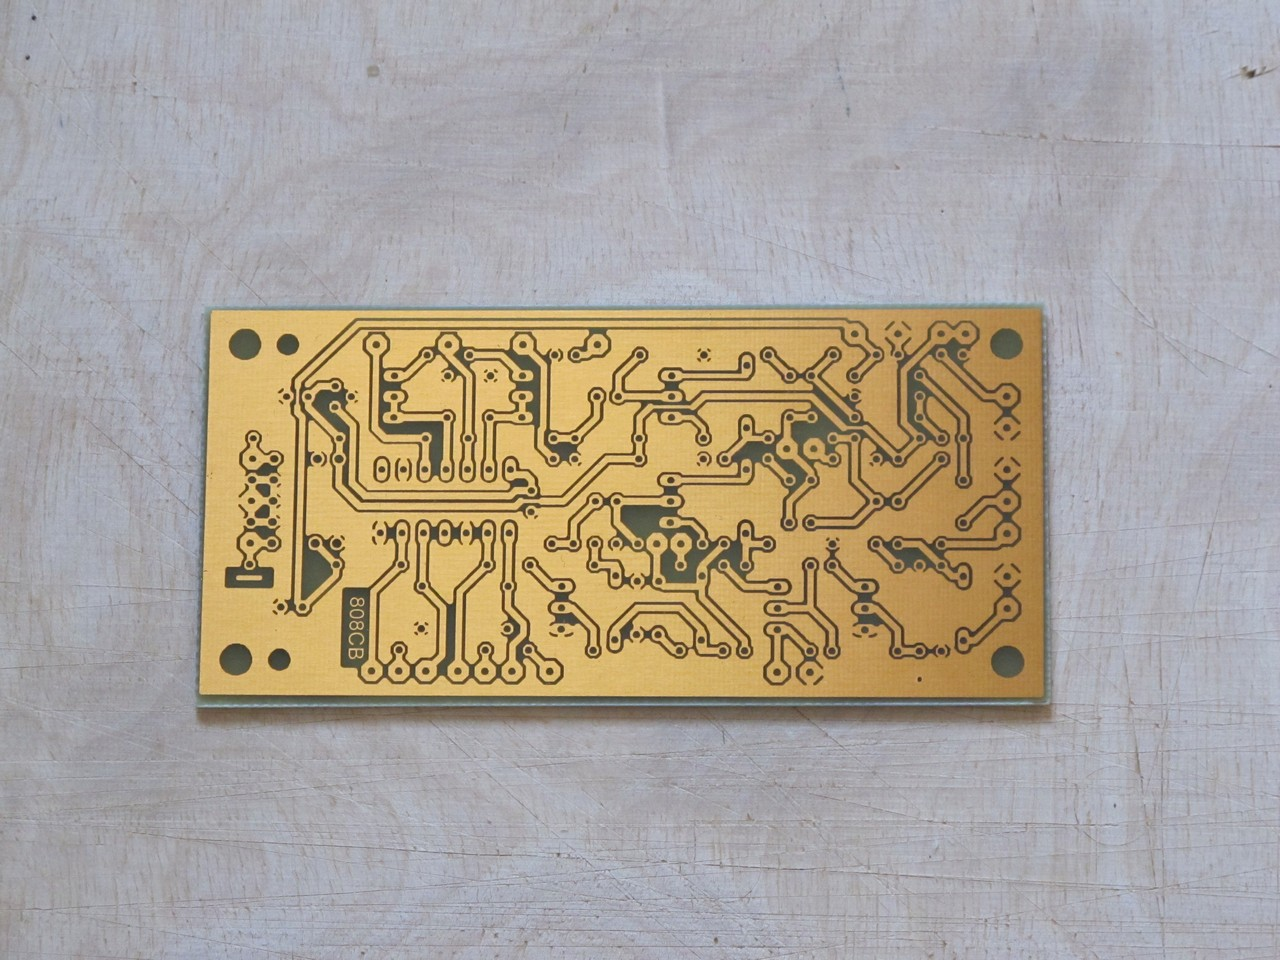 CB808 etched PCB